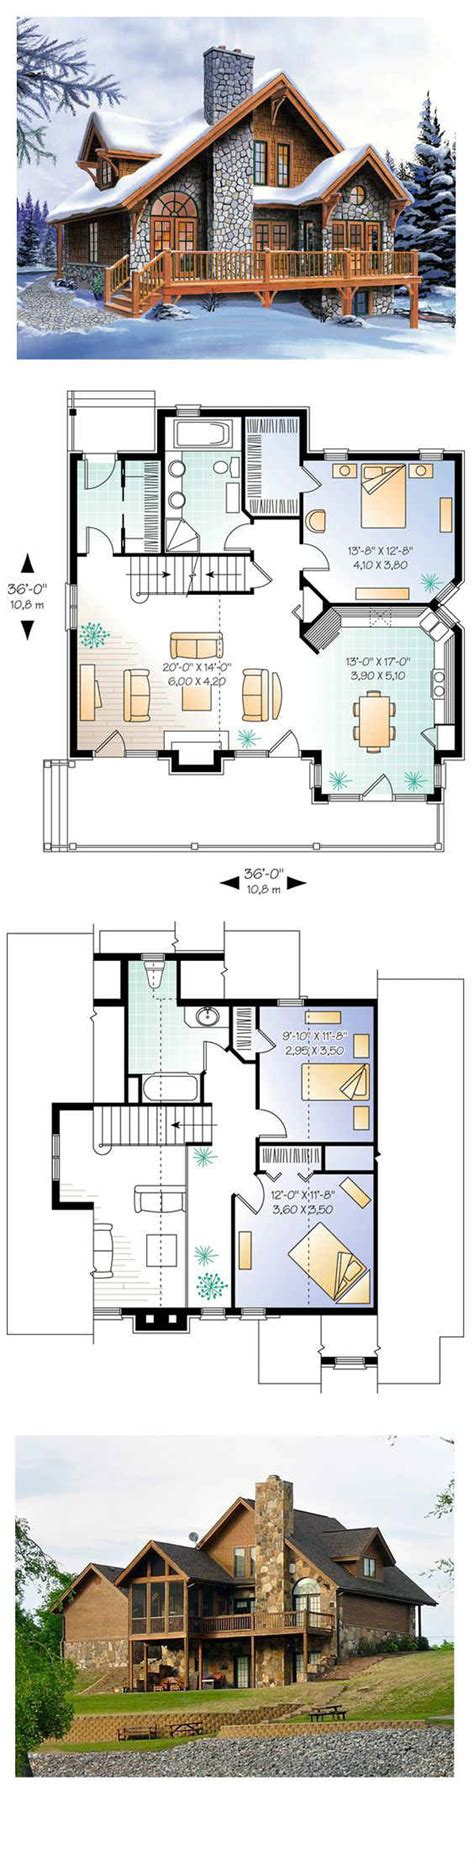 different house designs and floor plans different floor plans 28 images drafting ii architecture four different floor